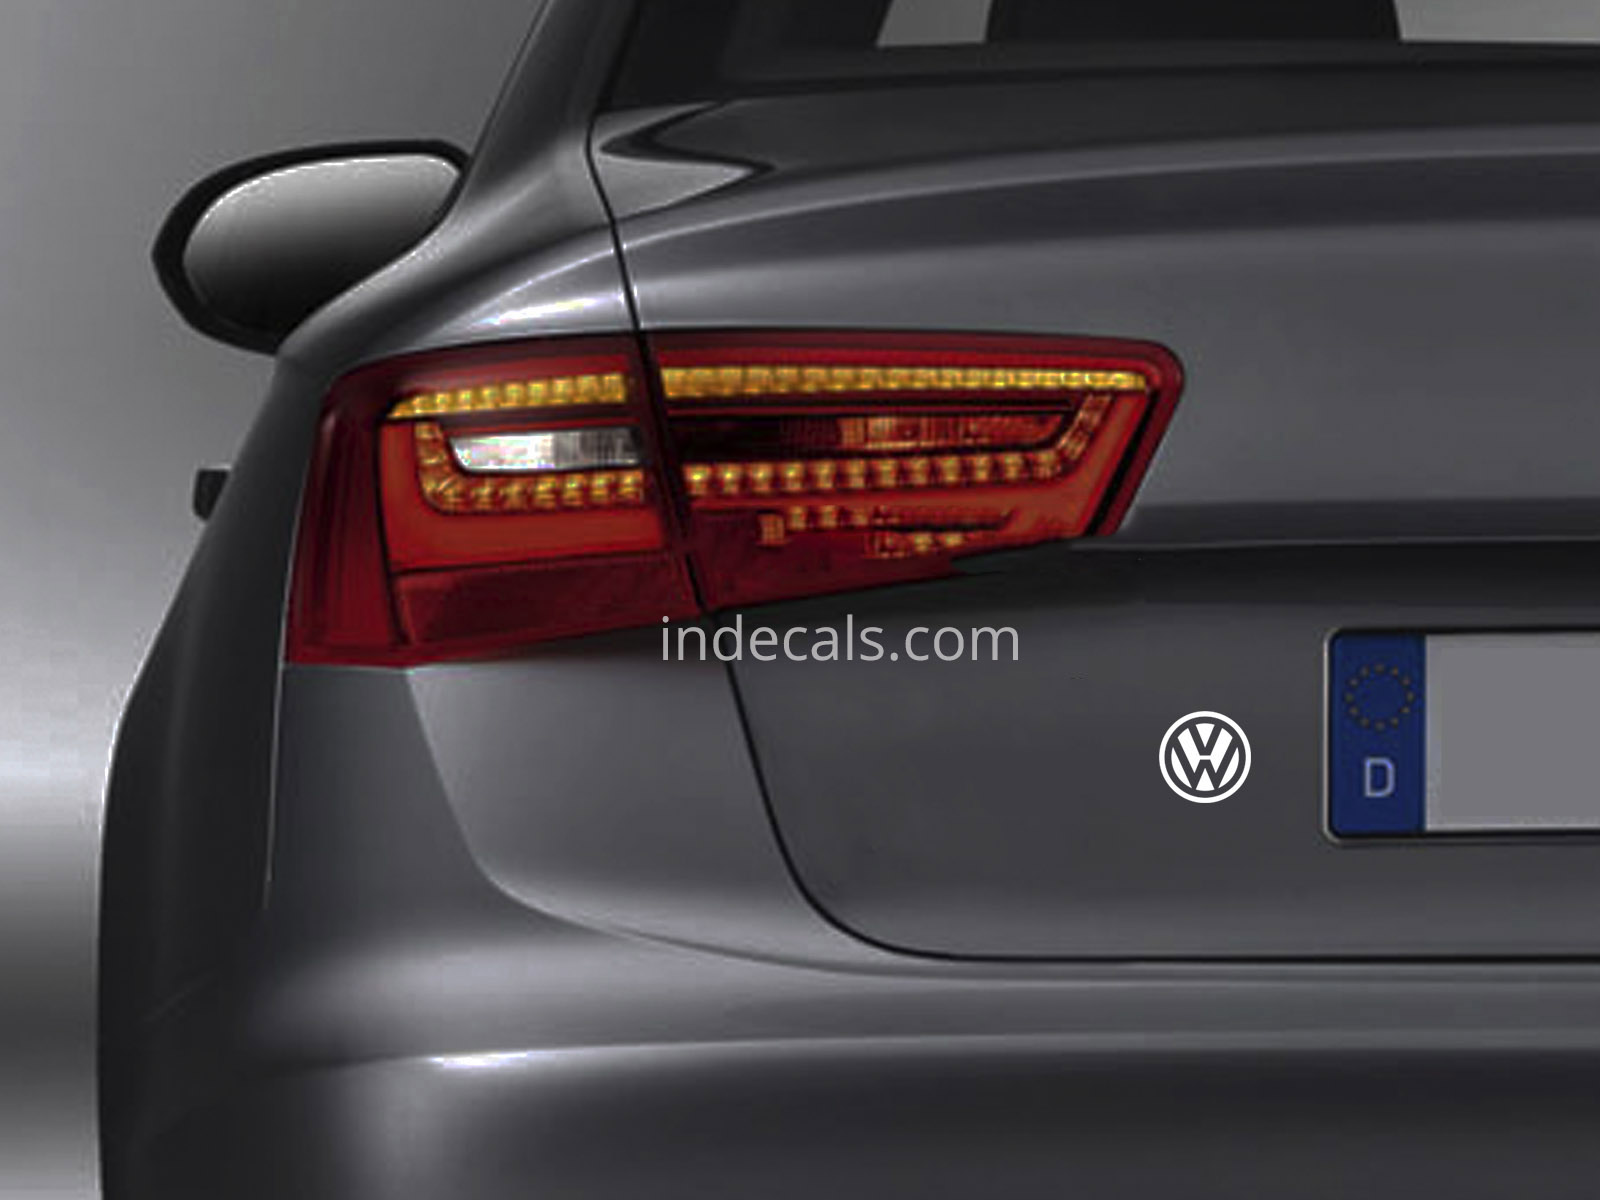 3 x Volkswagen Stickers for Trunk - White